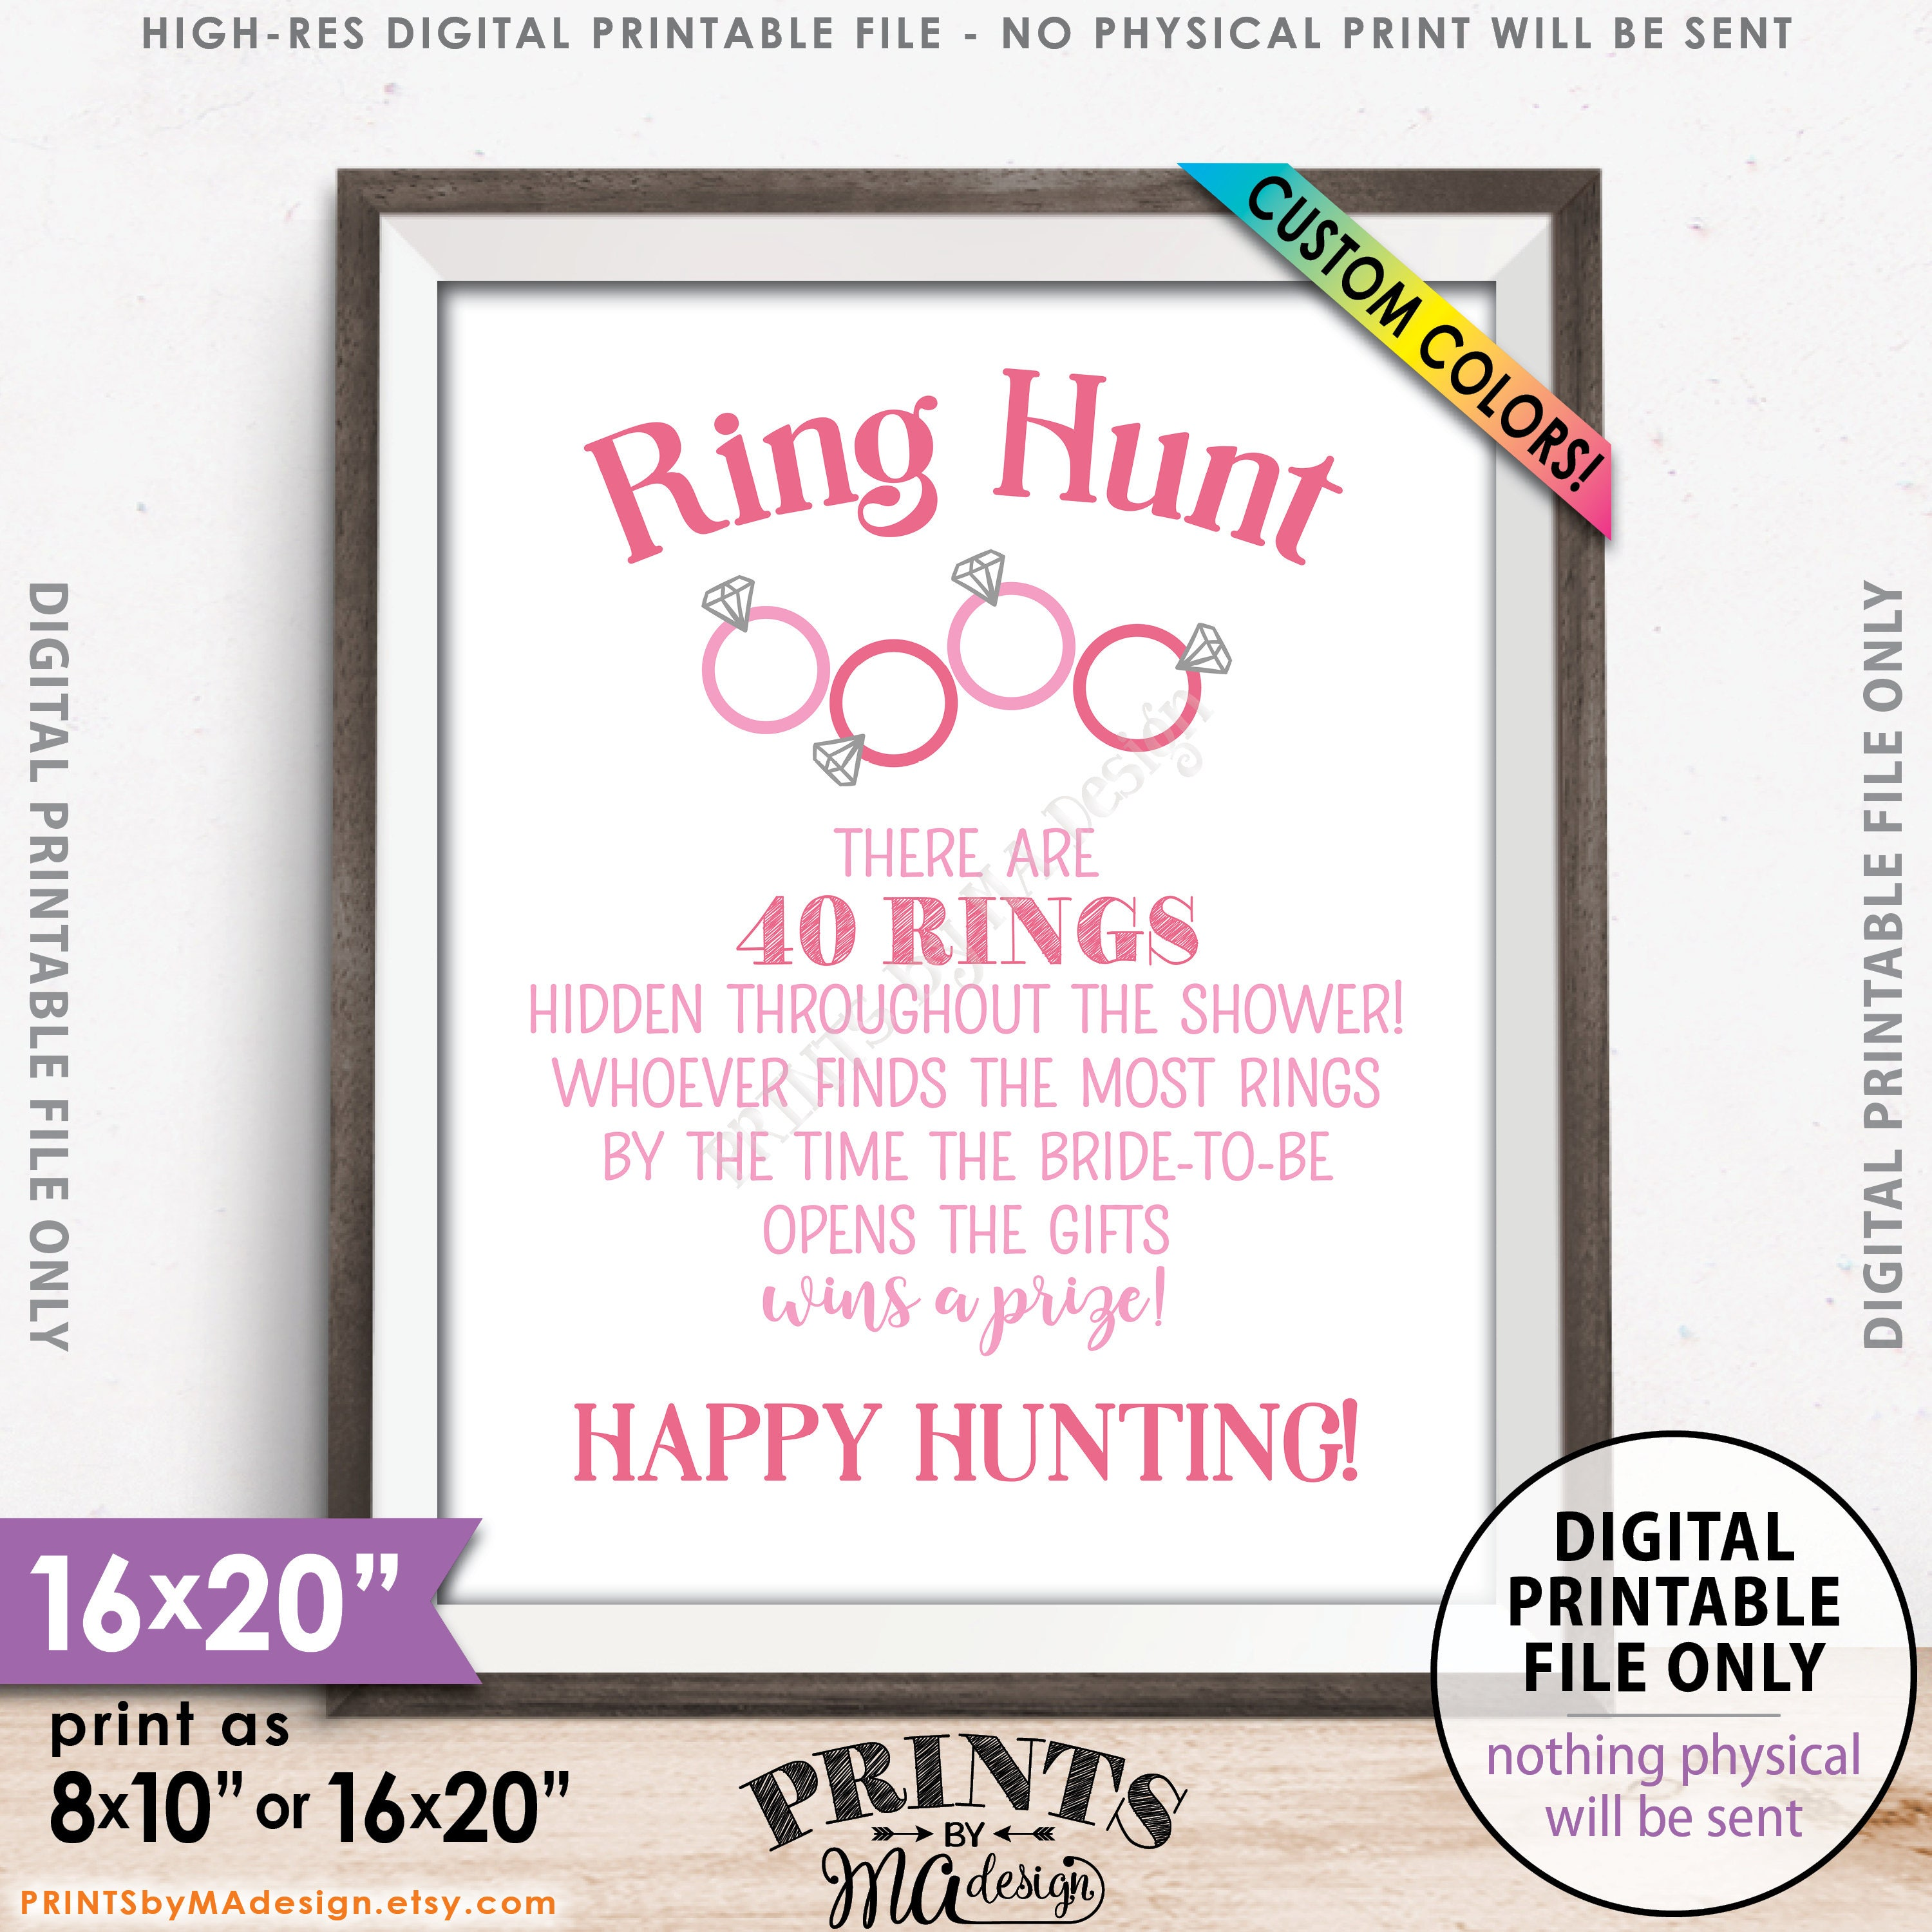 ring hunt bridal shower game sign ring scavenger hunt game for wedding shower ring hunt game custom colors printable 8x1016x20 sign